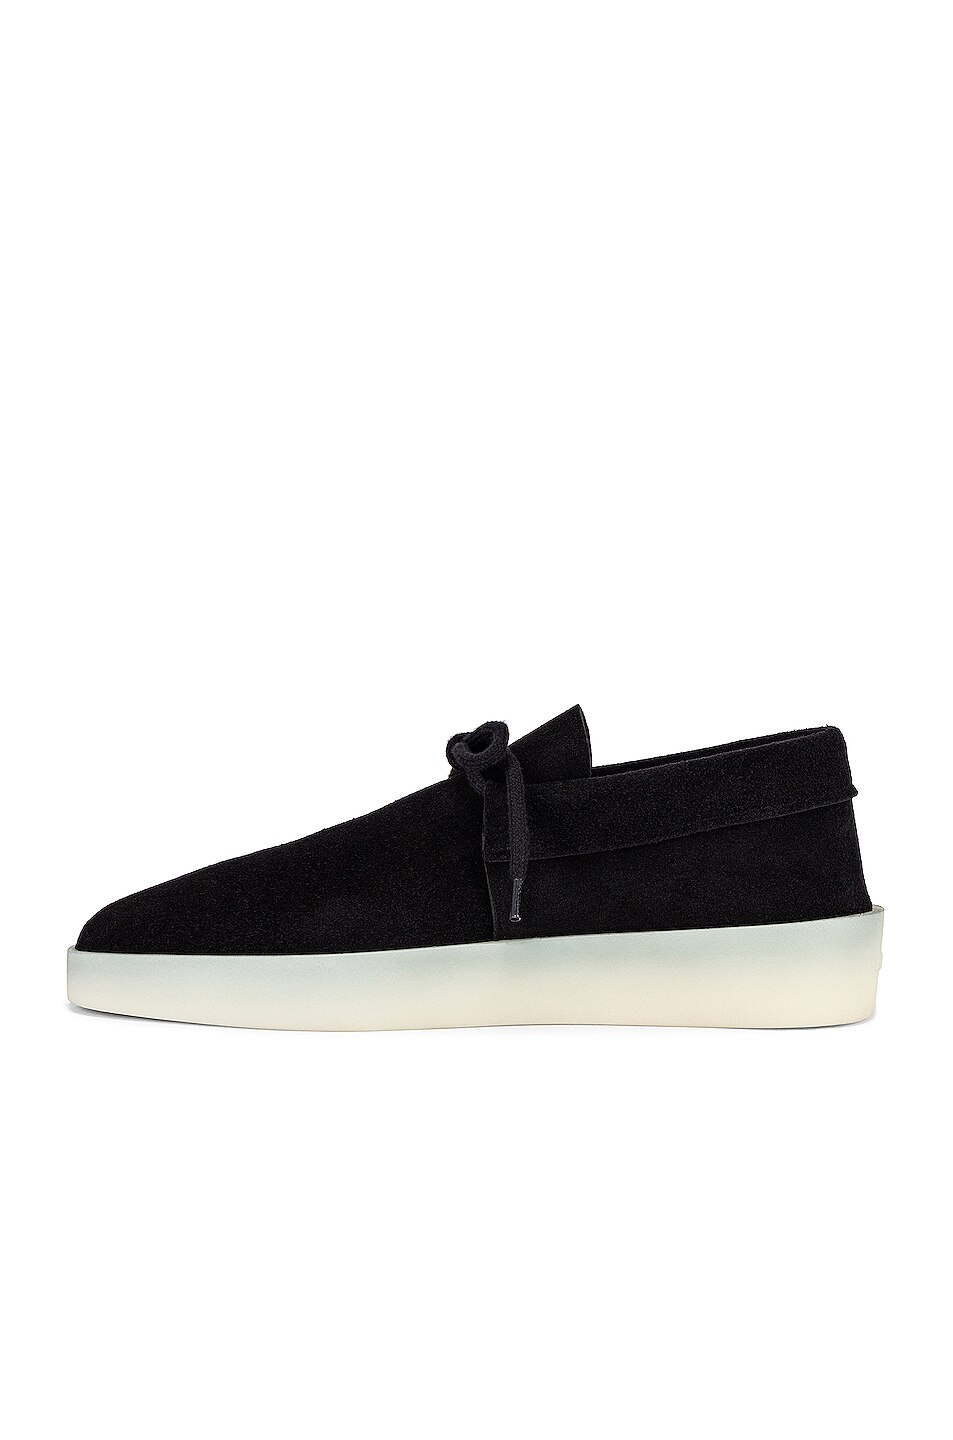 Fear of God Moccasin